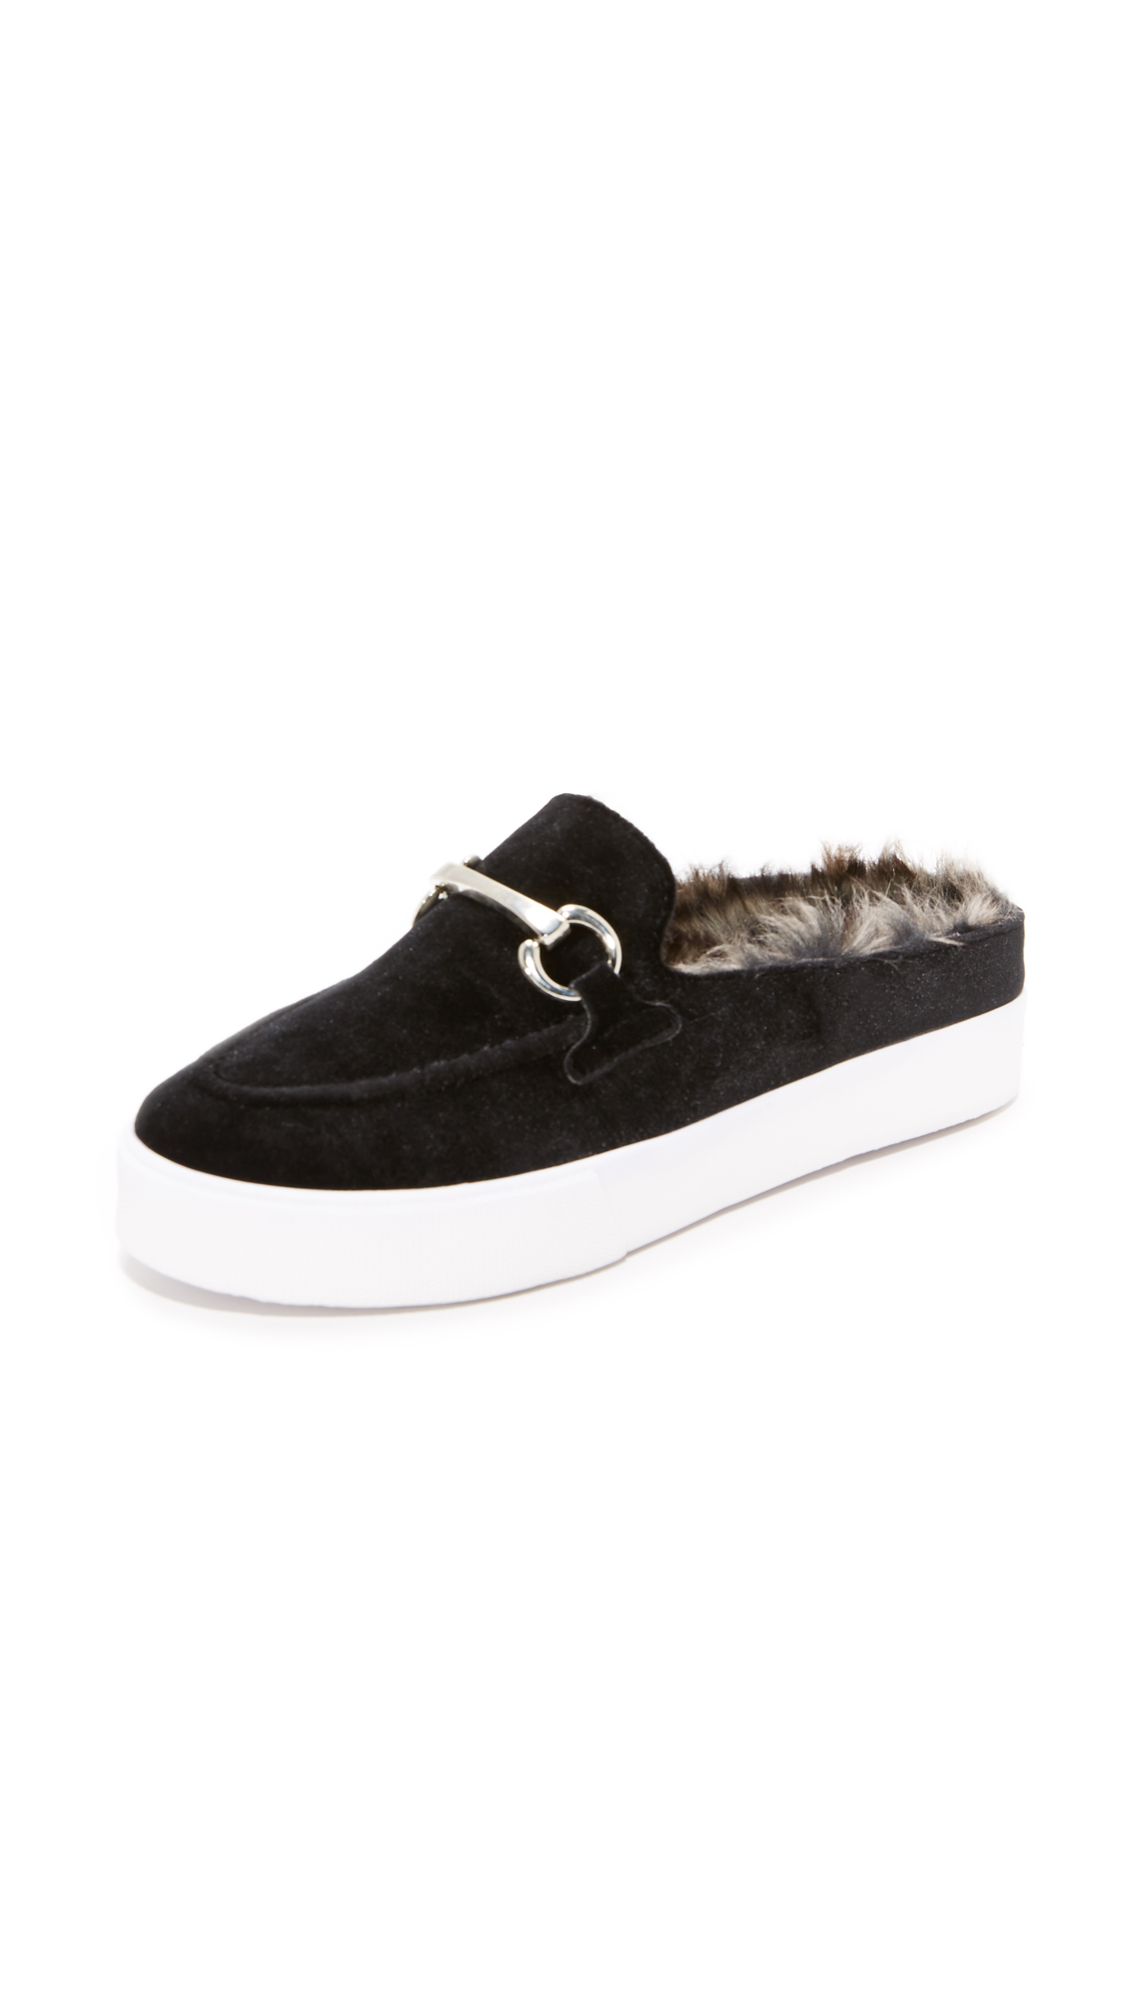 Jeffrey Campbell Tico Sneaker Mules - Black/Silver/Grey